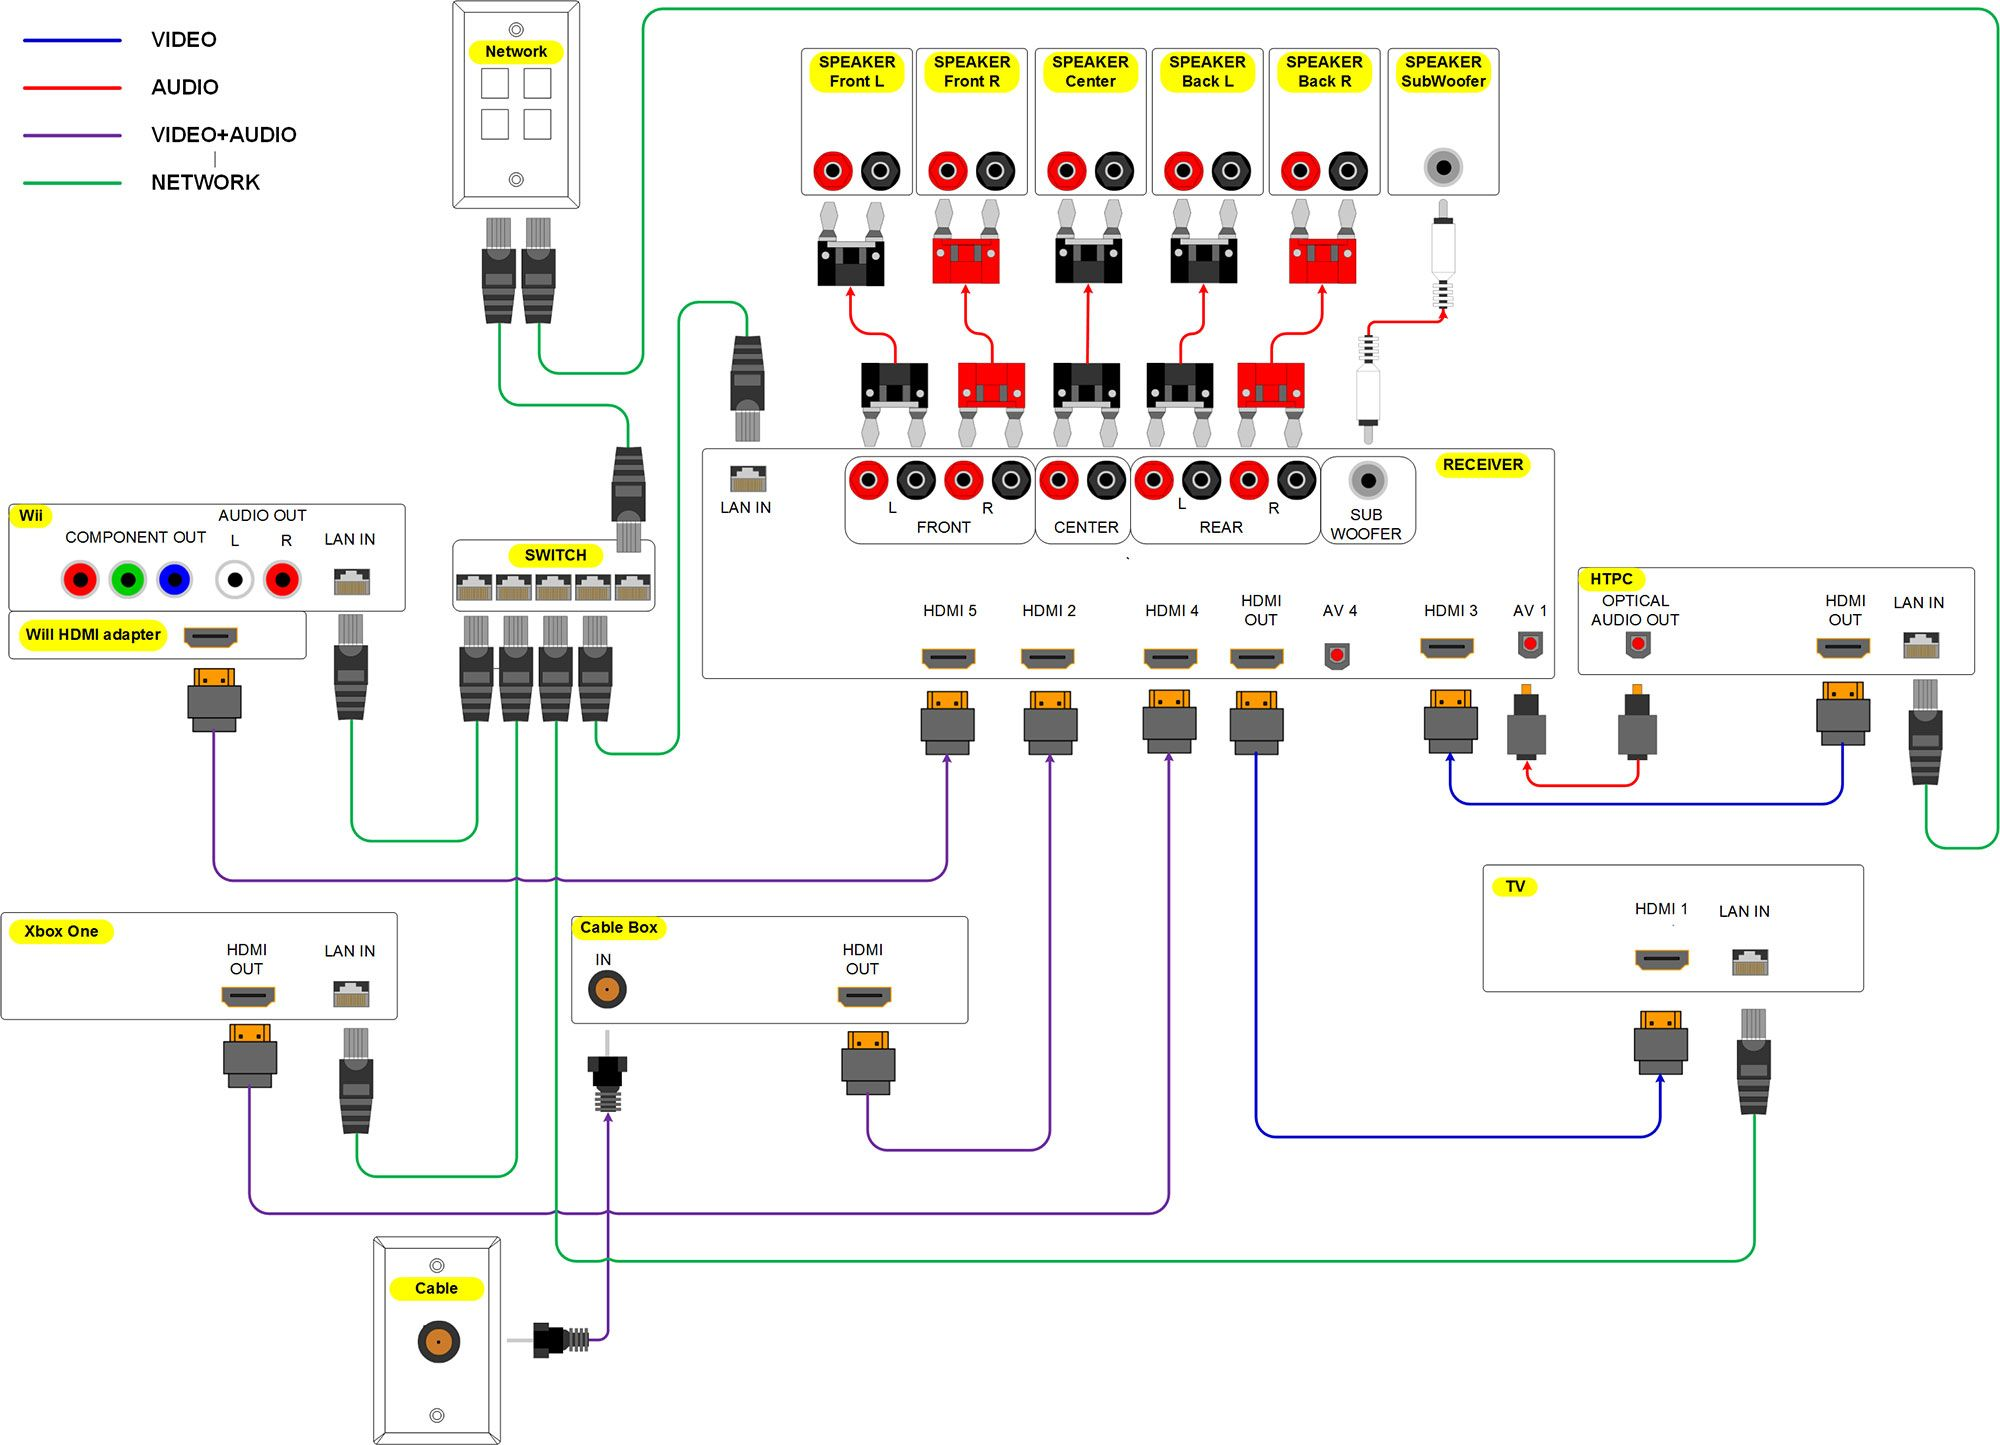 Home Theater Wiring Diagram (click it to see the big 2000 pixel wide .